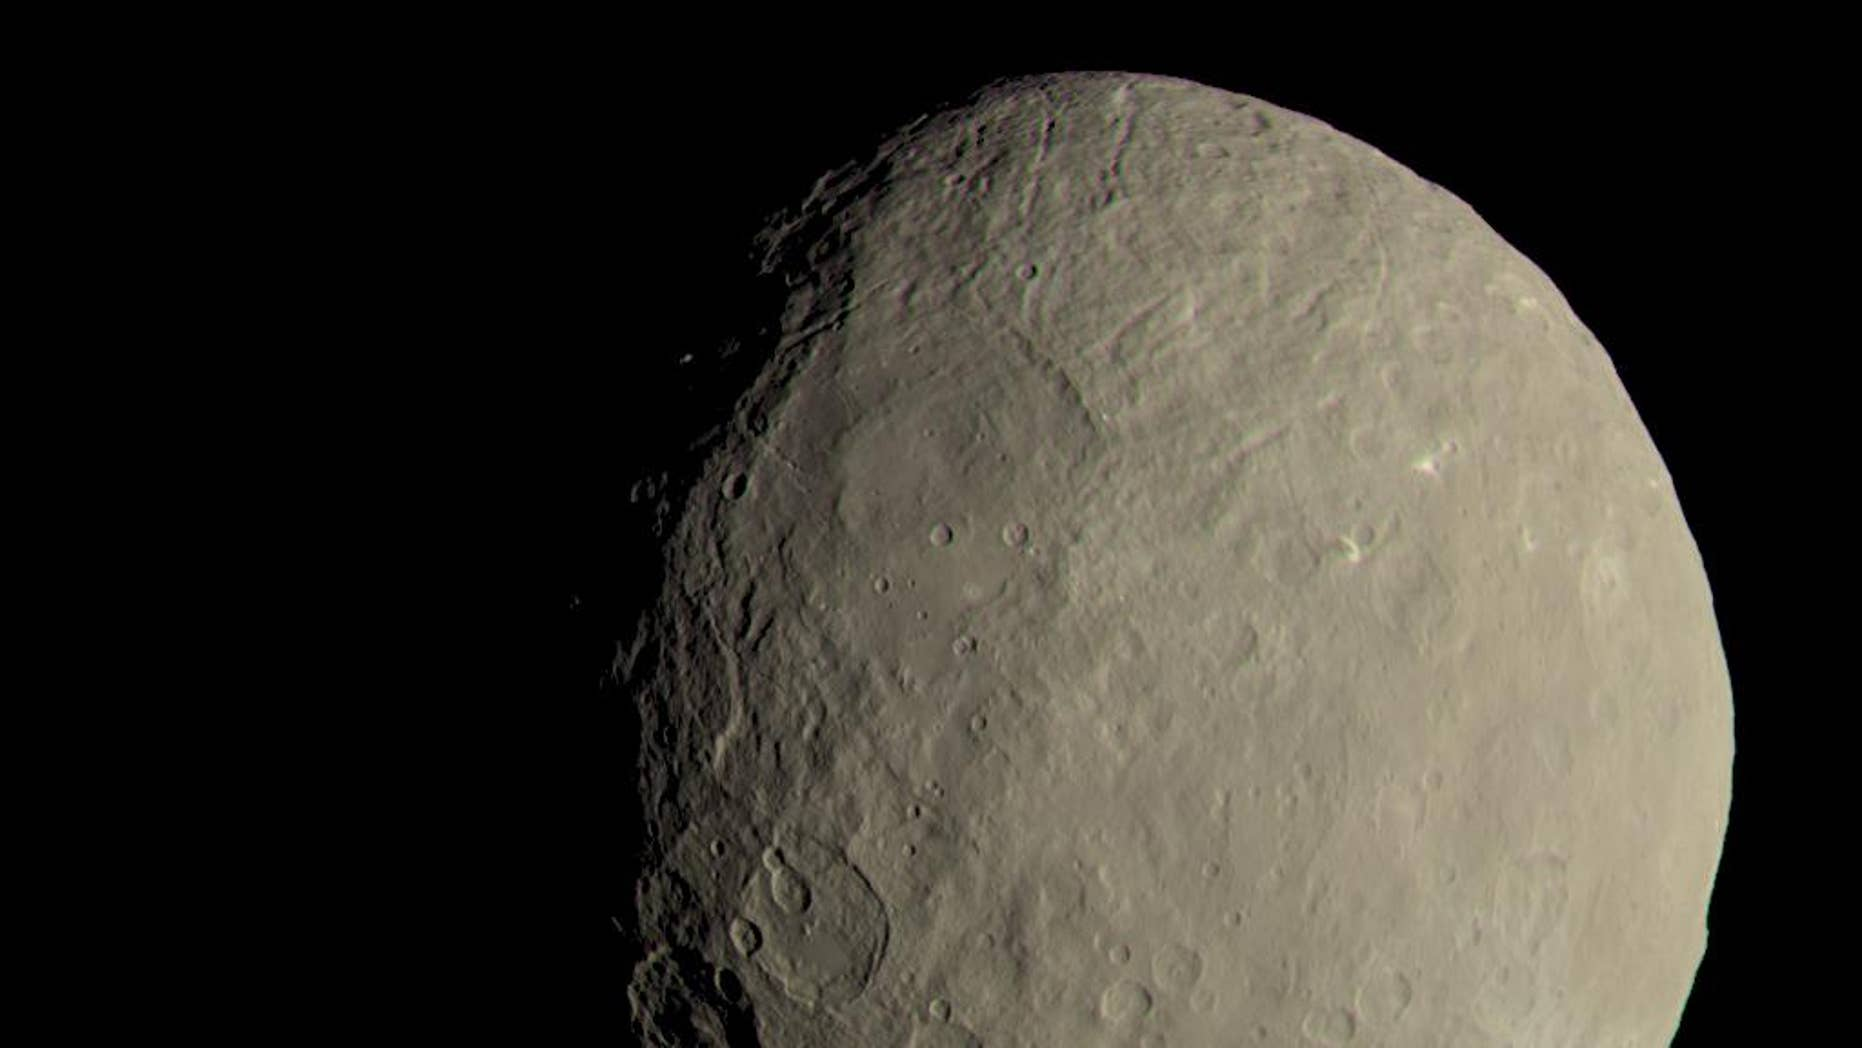 NASA's Dawn spacecraft has detected organic molecules in two different locations on the dwarf planet Ceres.